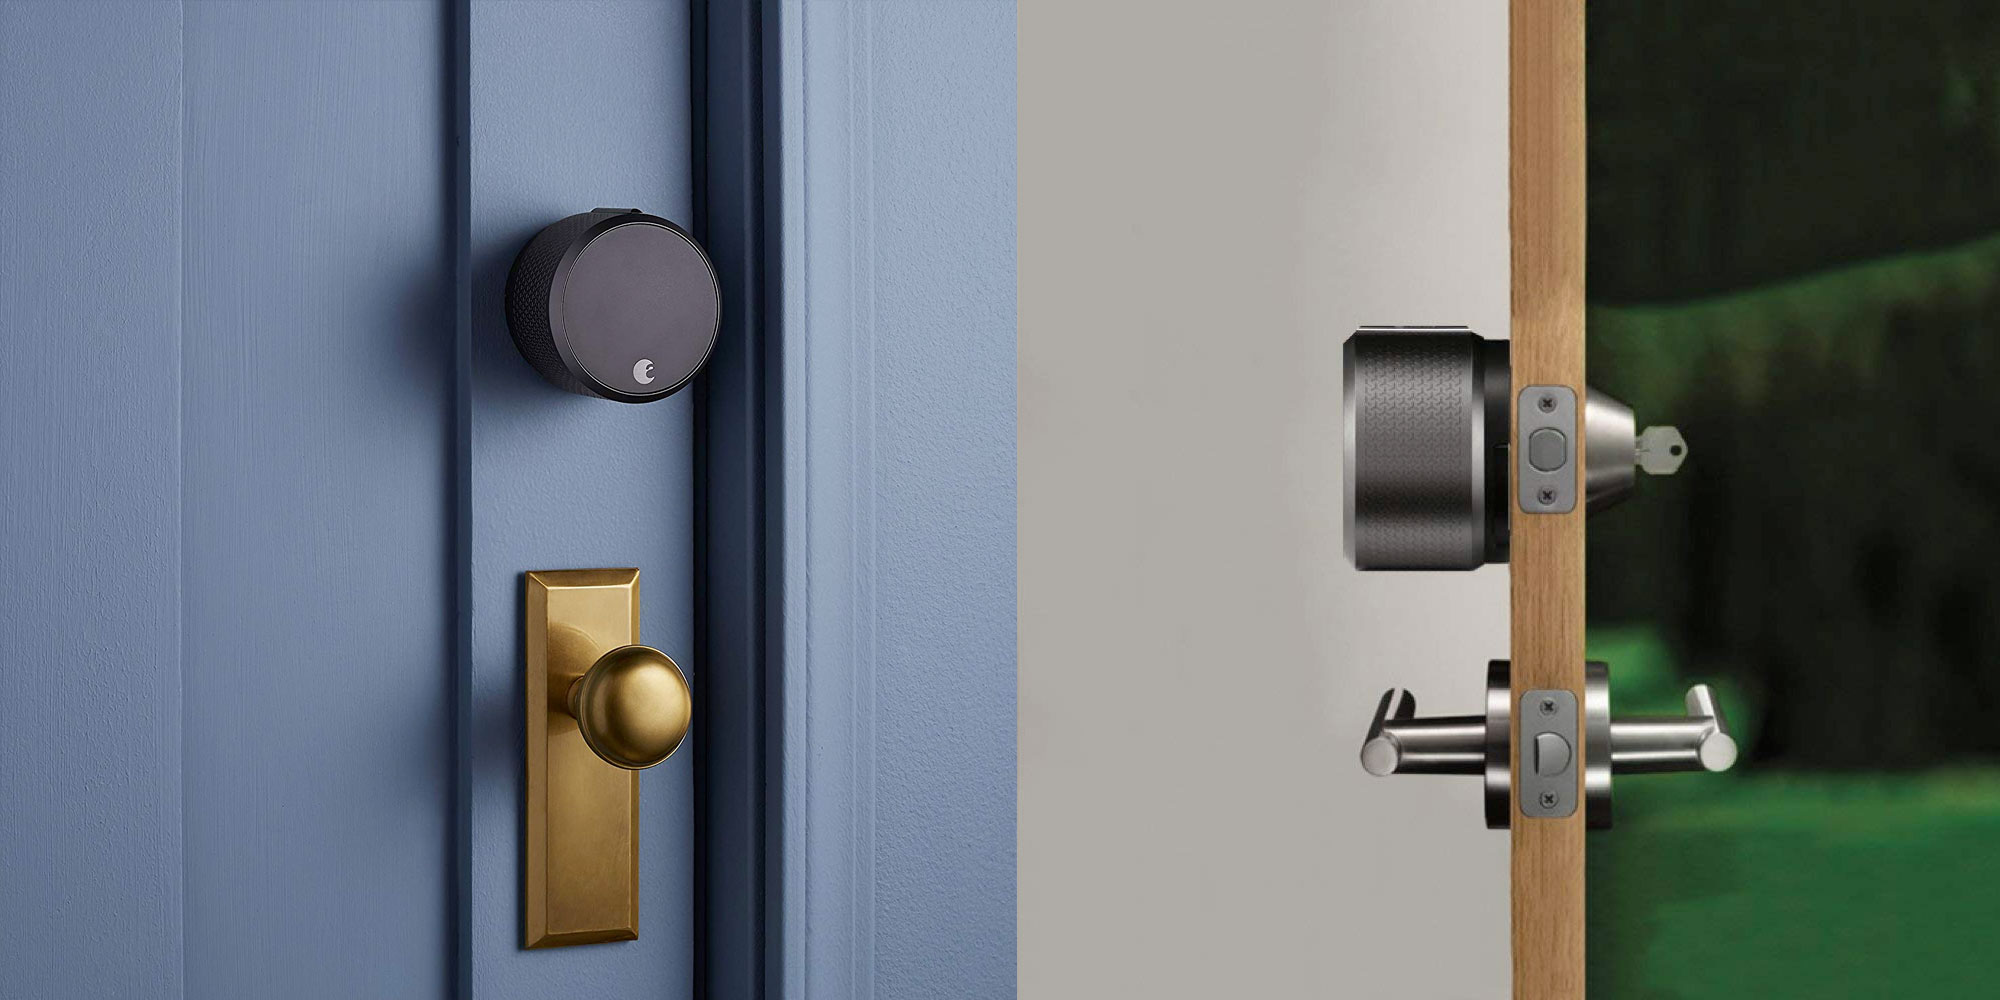 Add August's third gen. HomeKit Smart Lock Pro to your door from $157 shipped (Up to 40% off)